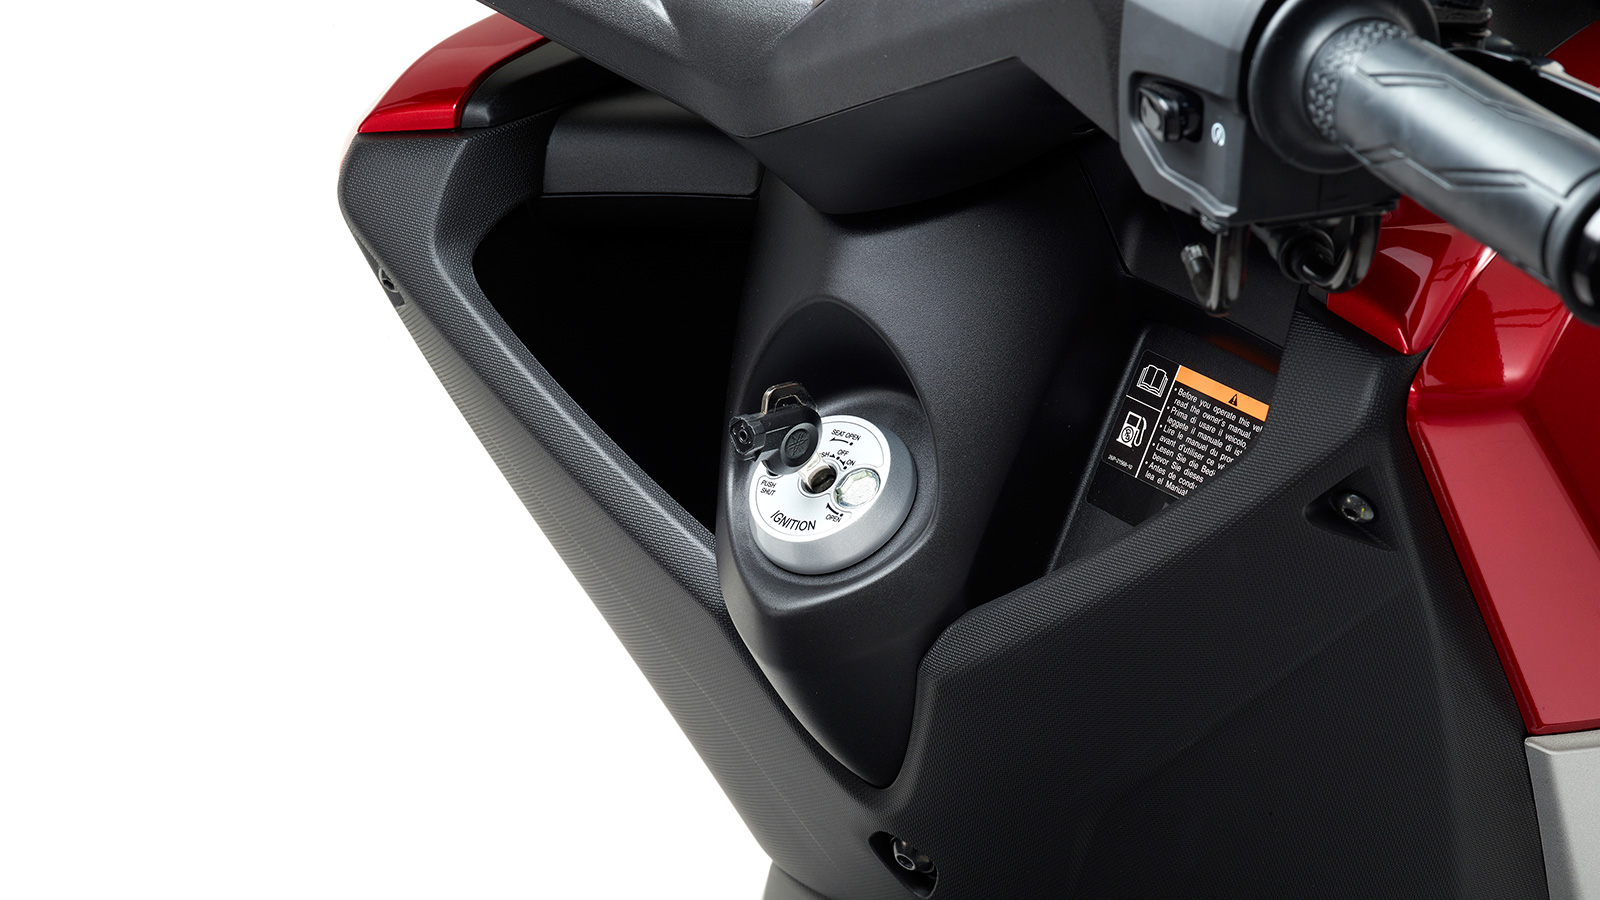 foto yamaha n max 125 2015 detalles 11. Black Bedroom Furniture Sets. Home Design Ideas